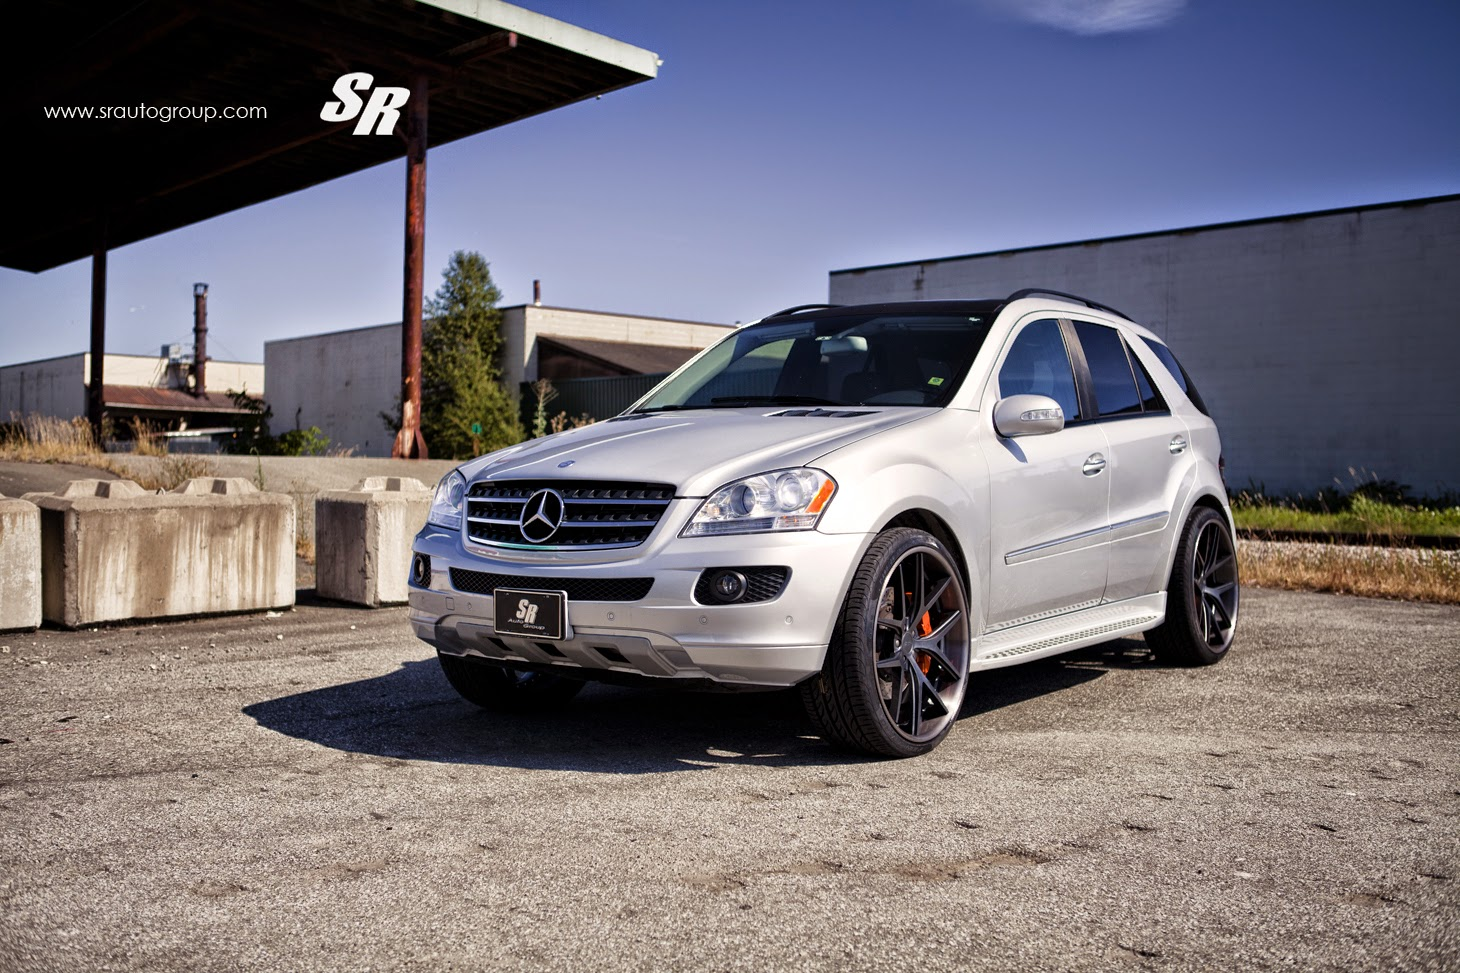 Mercedes benz w164 ml320 on pur wheels benztuning for Mercedes benz wheel